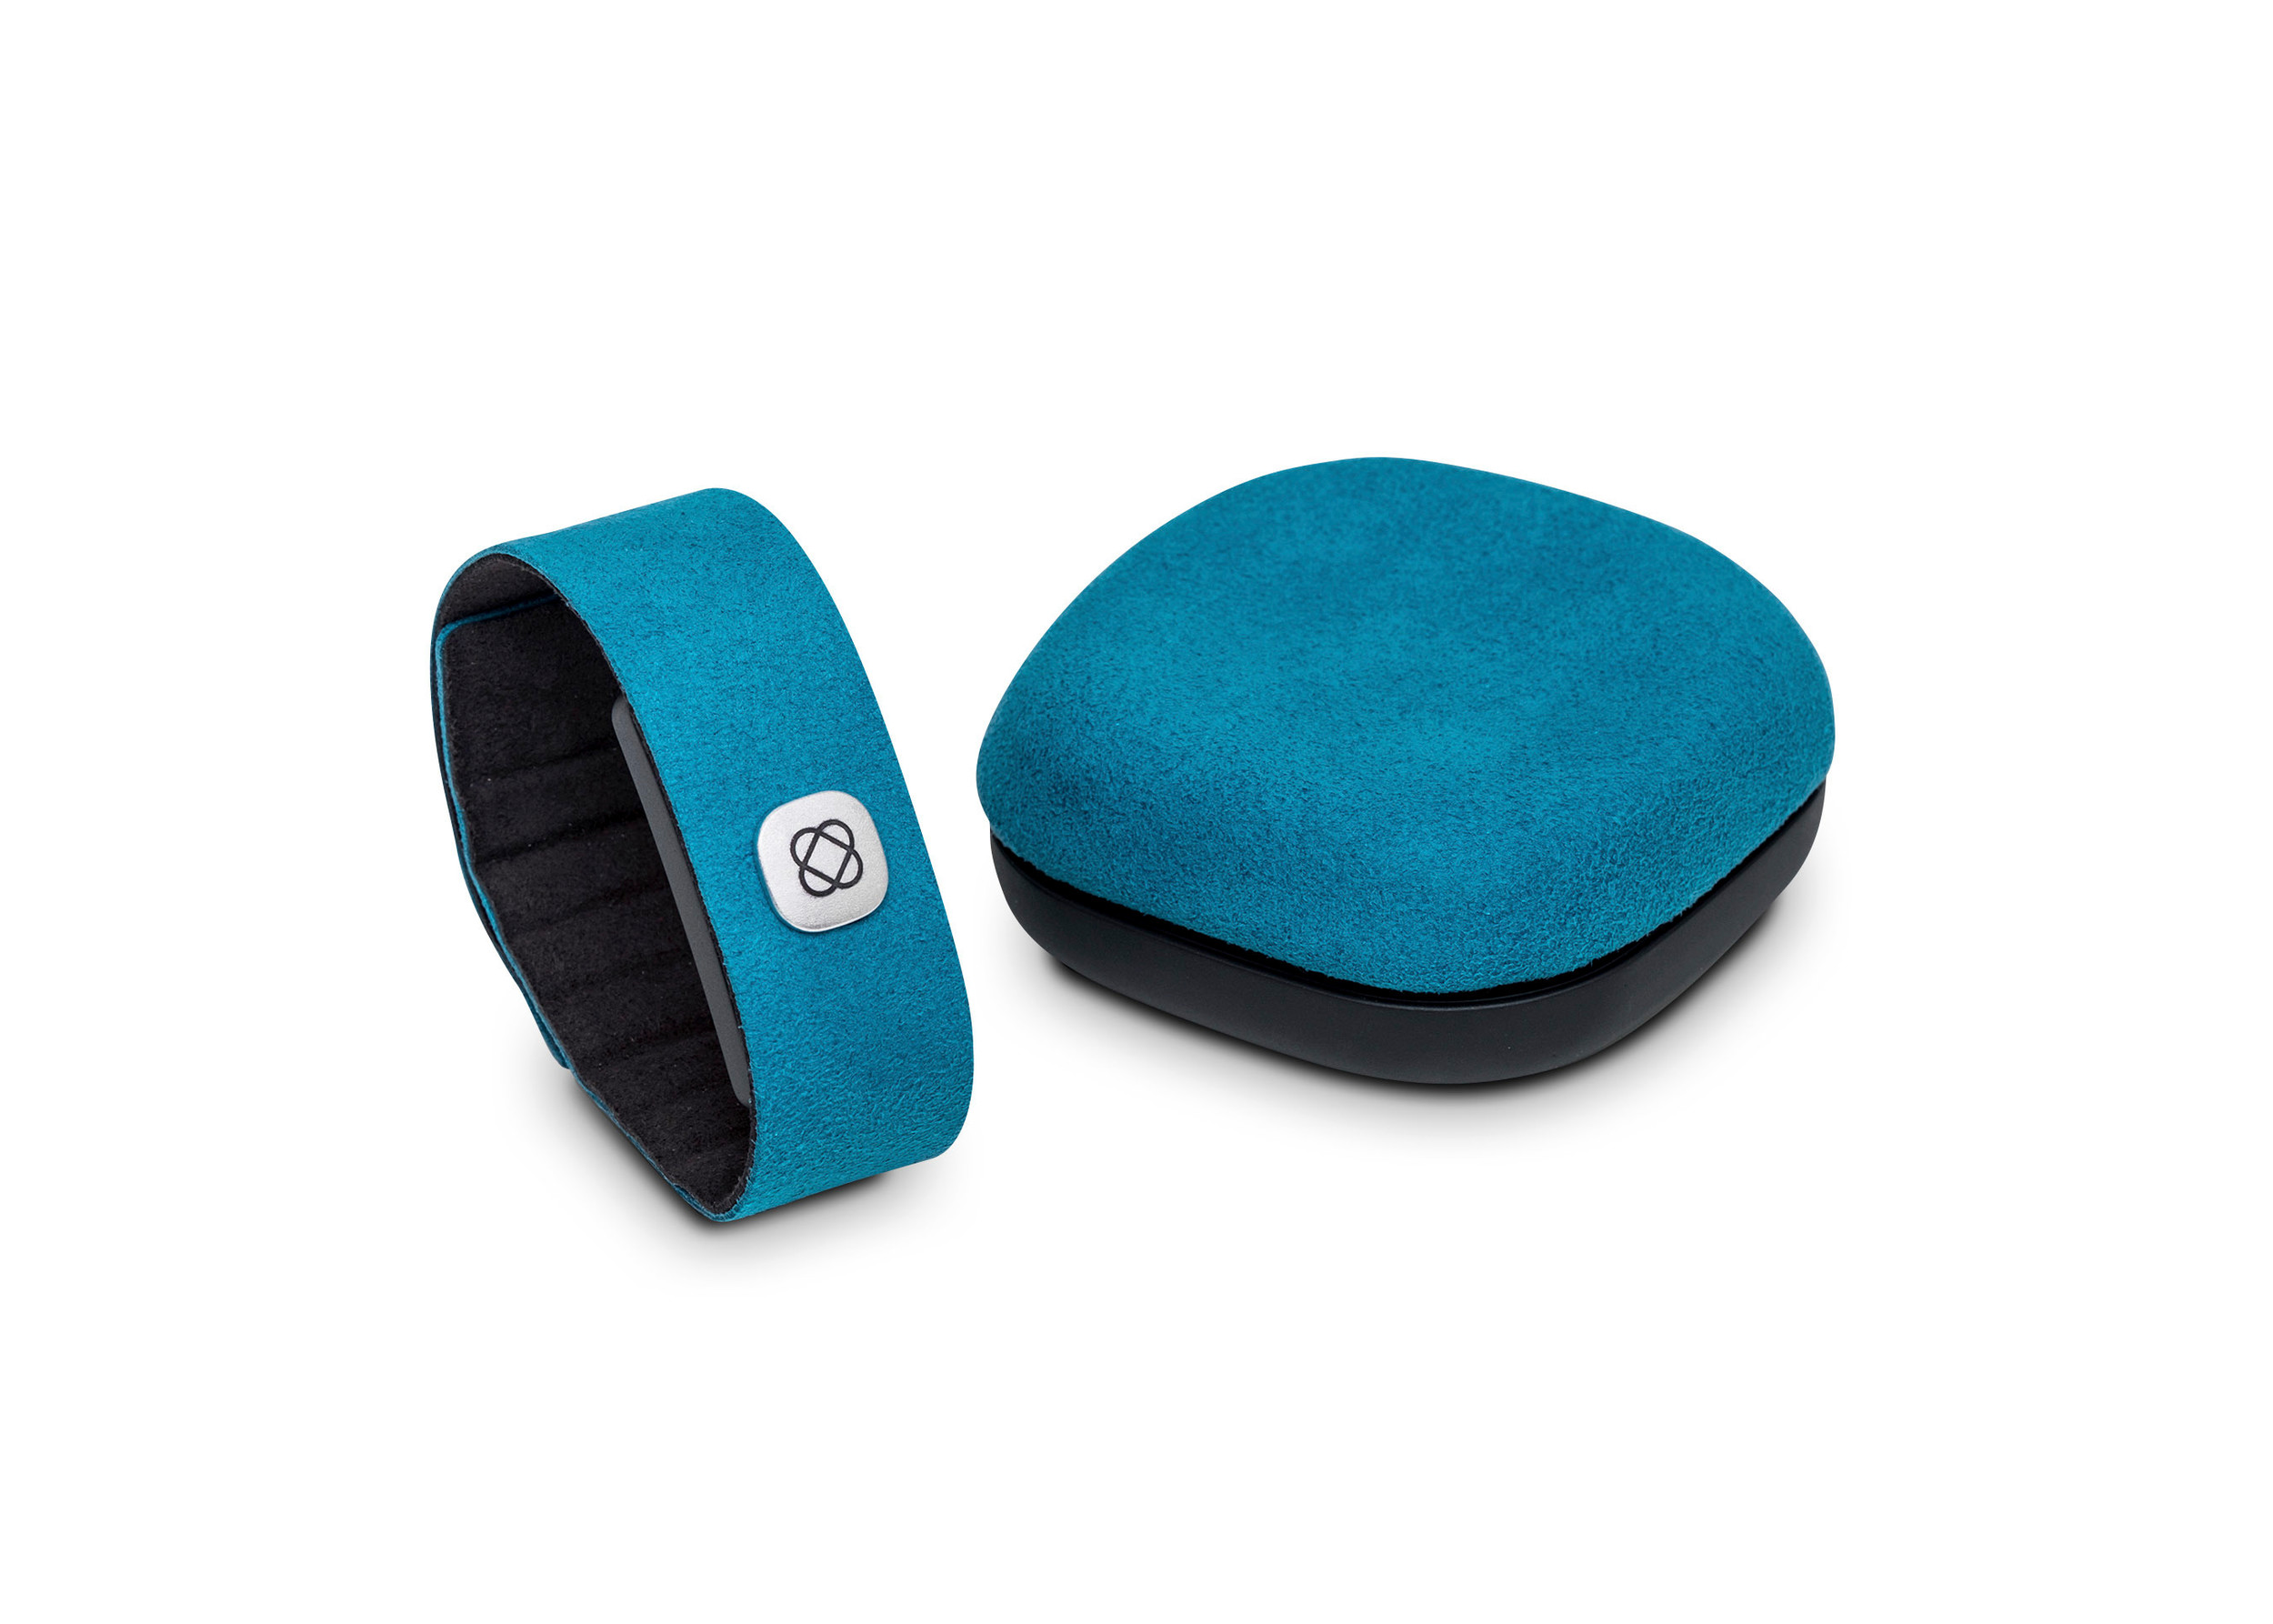 Little Riot's Pillow Talk transmits the sound of one person's heartbeat to another's pillow, using a smartphone app, two wristbands and speakers.